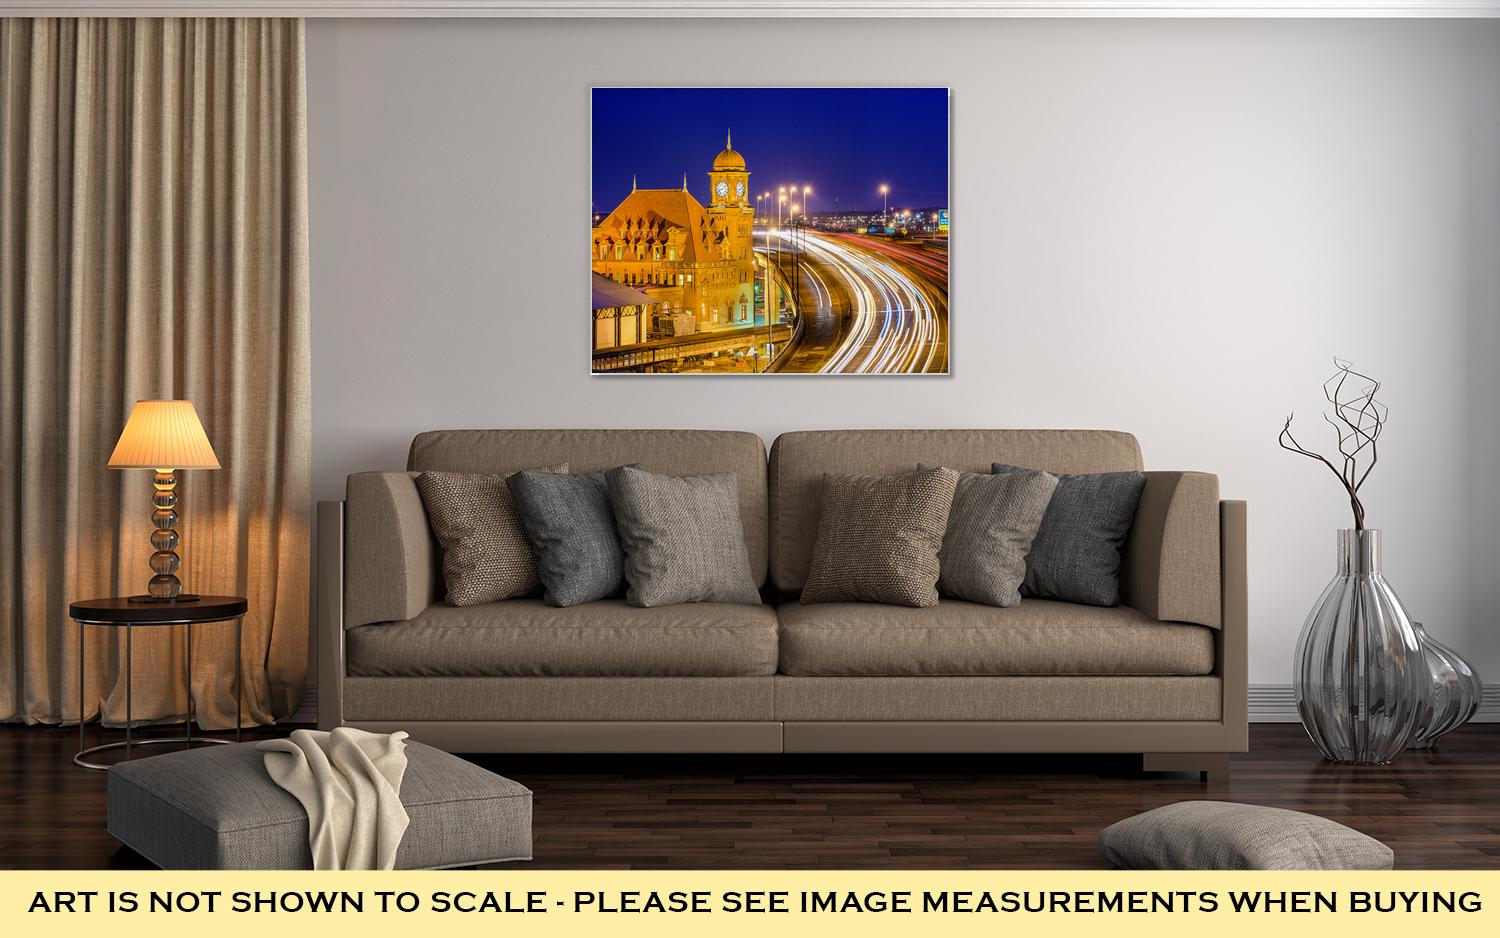 Gallery Wrapped Canvas, Richmond Virginia Old Main Station